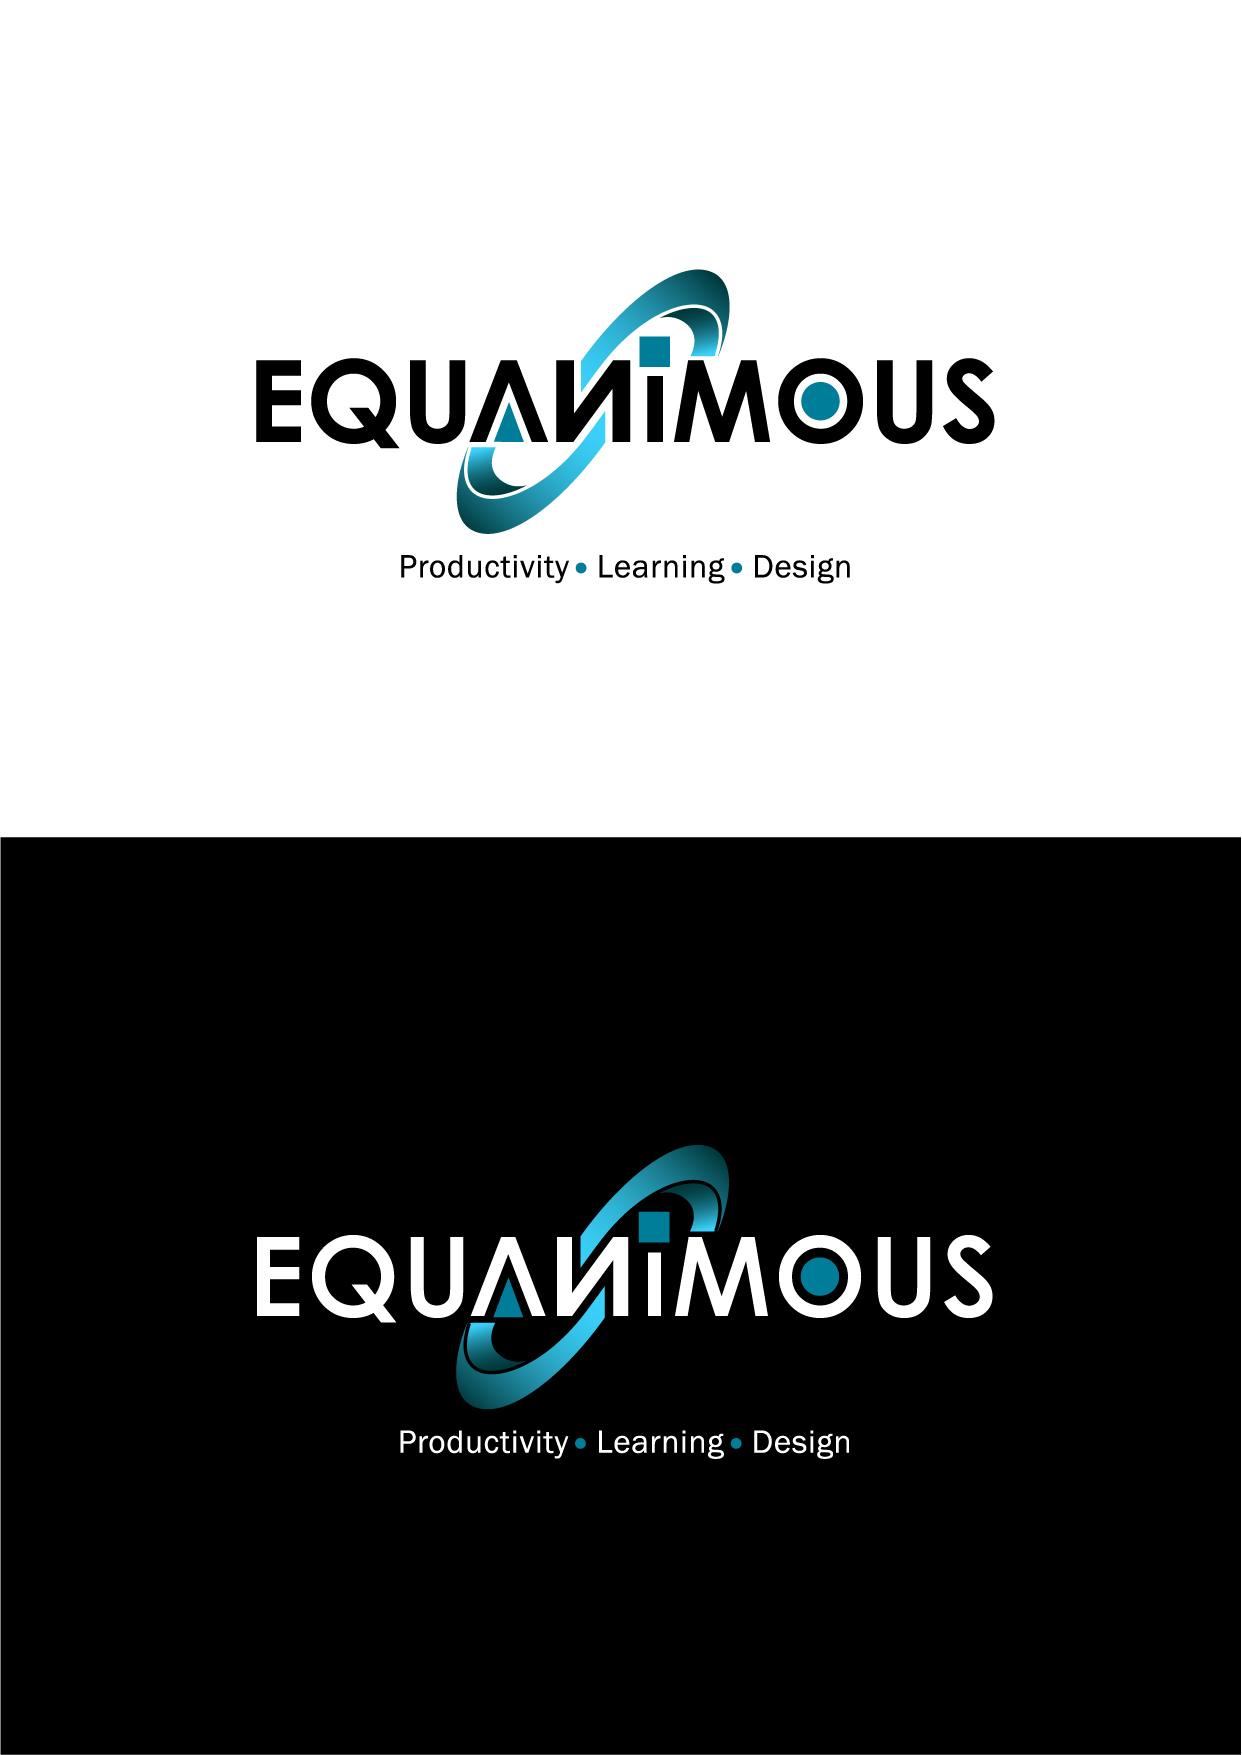 Logo Design by Wilfredo Mendoza - Entry No. 362 in the Logo Design Contest Logo Design : EQUANIMOUS : Productivity | Learning | Design.